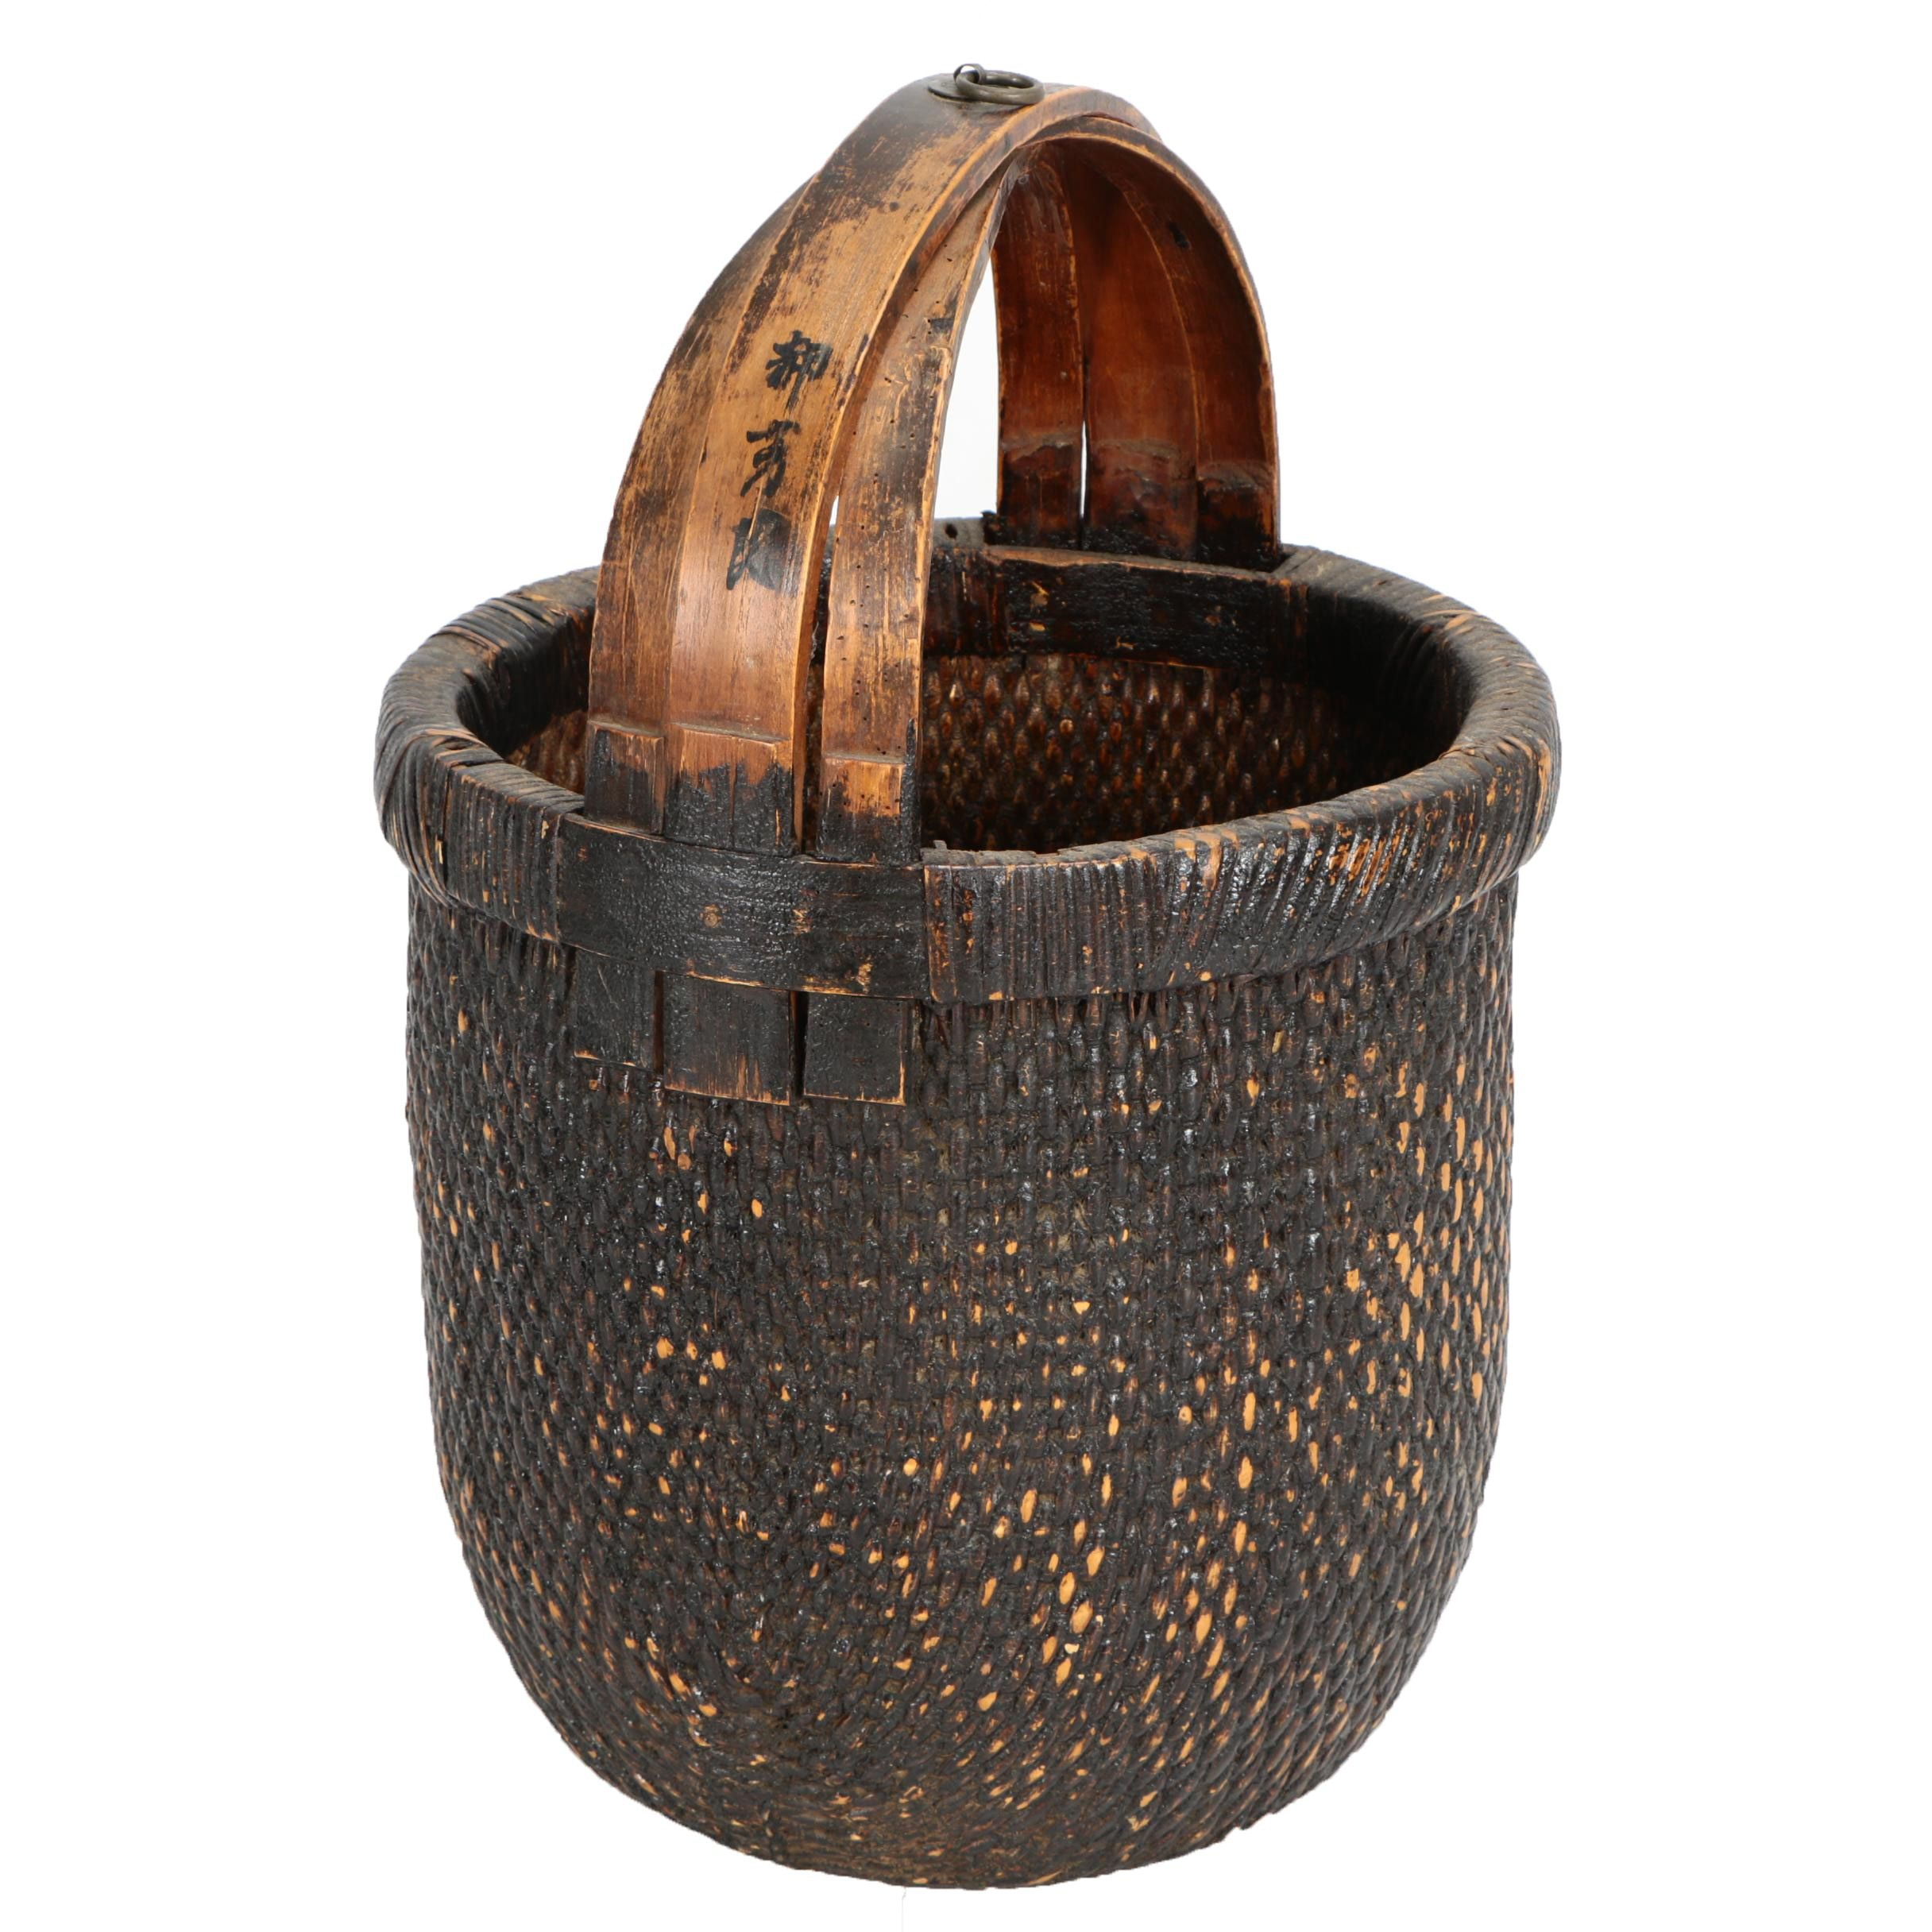 Vintage Chinese Rice Basket with Bamboo Handle